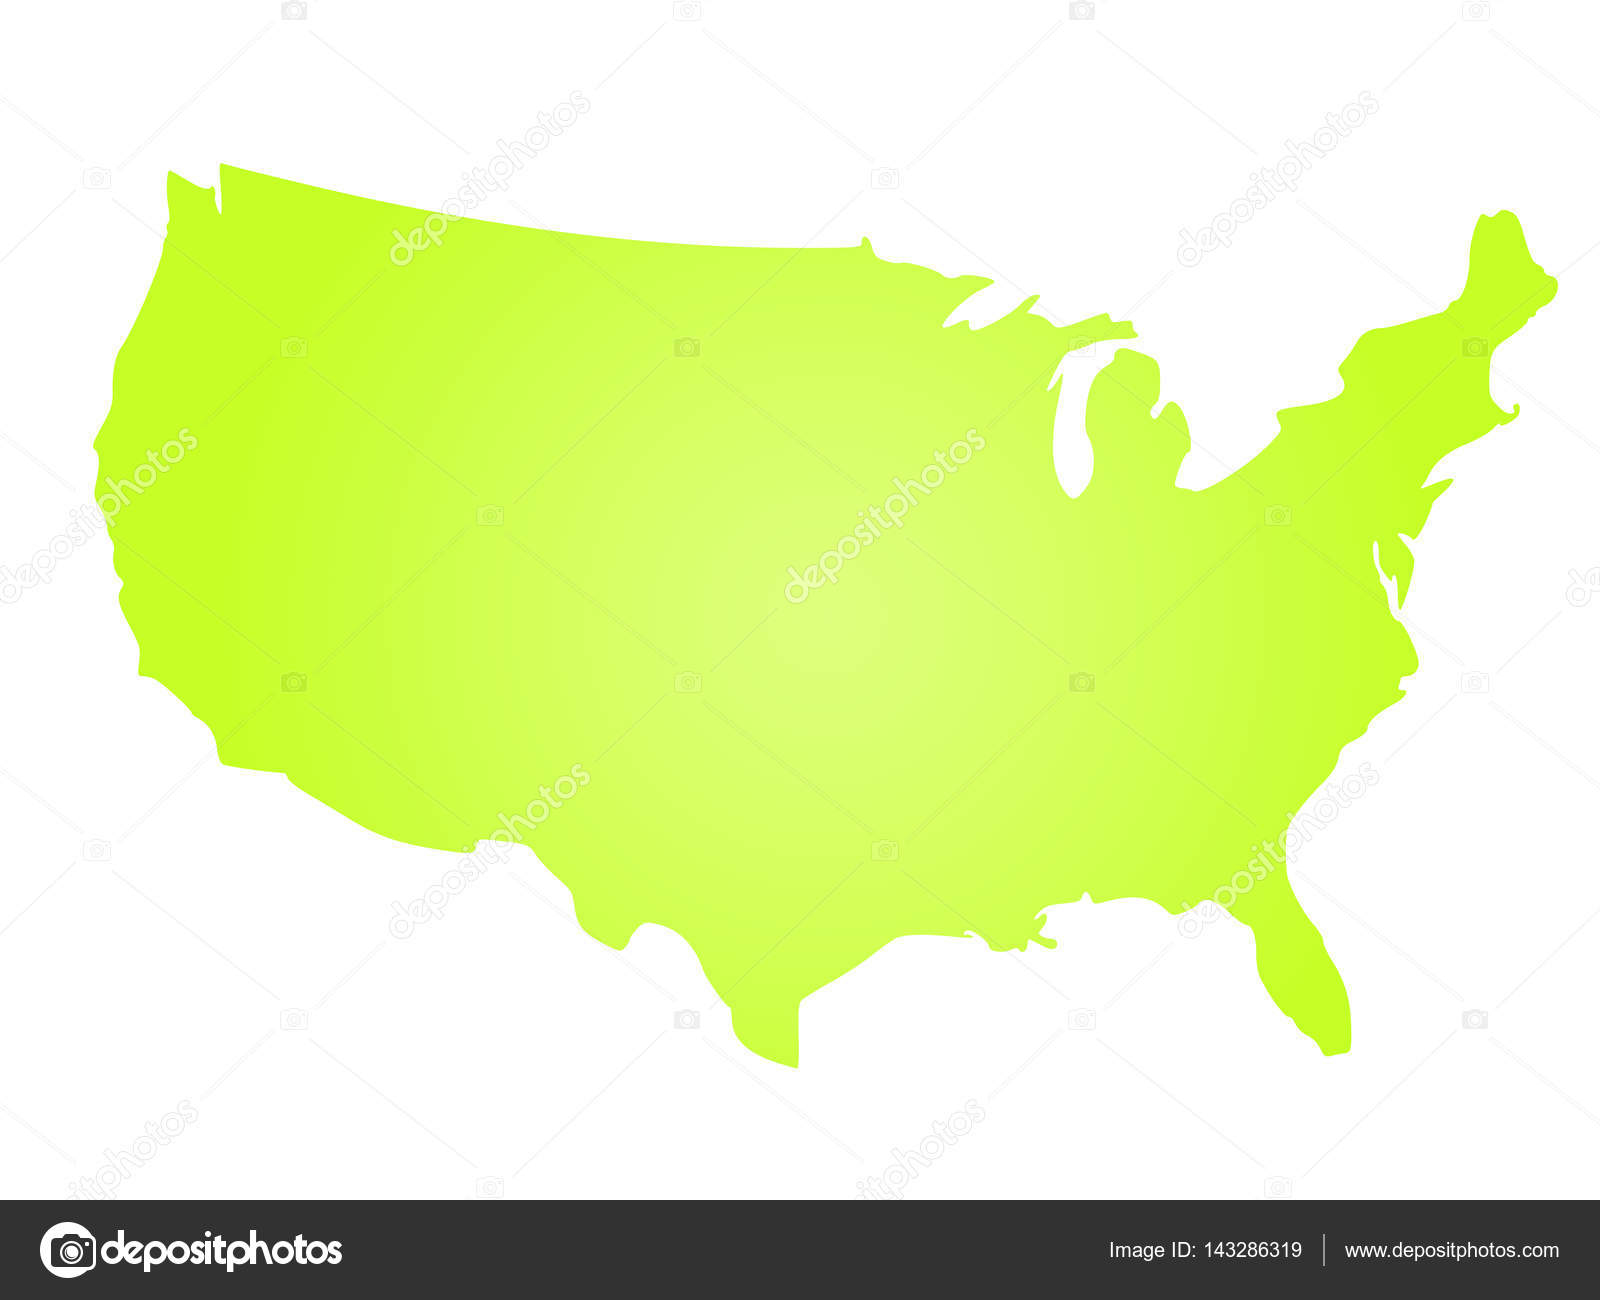 green radial gradient silhouette map of united states of america aka usa vector illustration